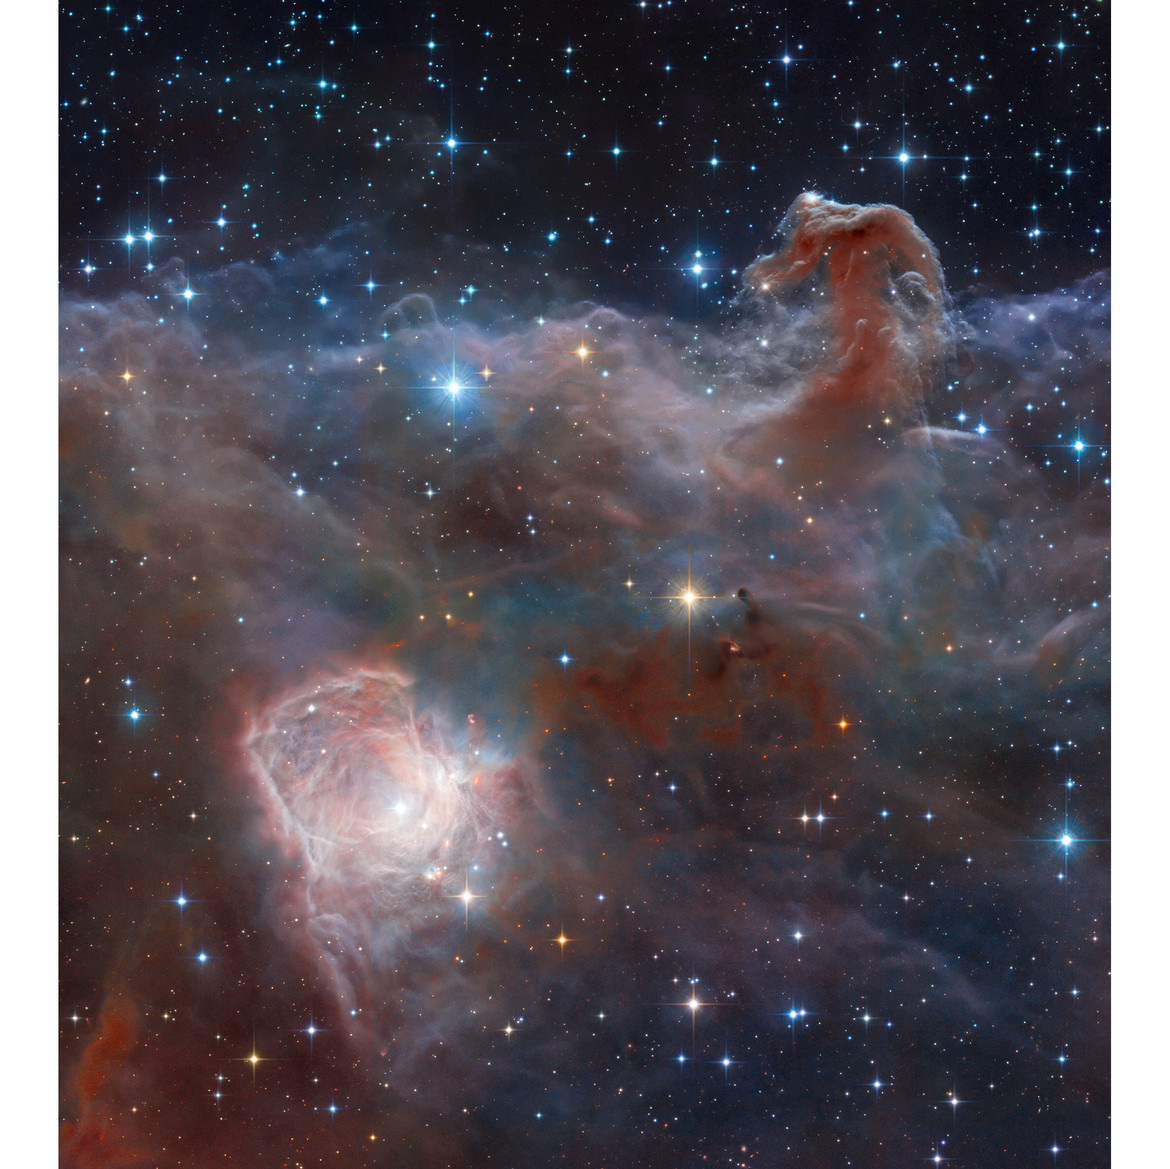 A remastered mosica of the VISTA and Hubble infrared views of the Horsehead and Flame Nebulae. Credit: ESO/J. Emerson/VISTA/Cambridge Astronomical Survey Unit  & HLA/Hubble Heritage Team (STScI/AURA) & Robert Gendler